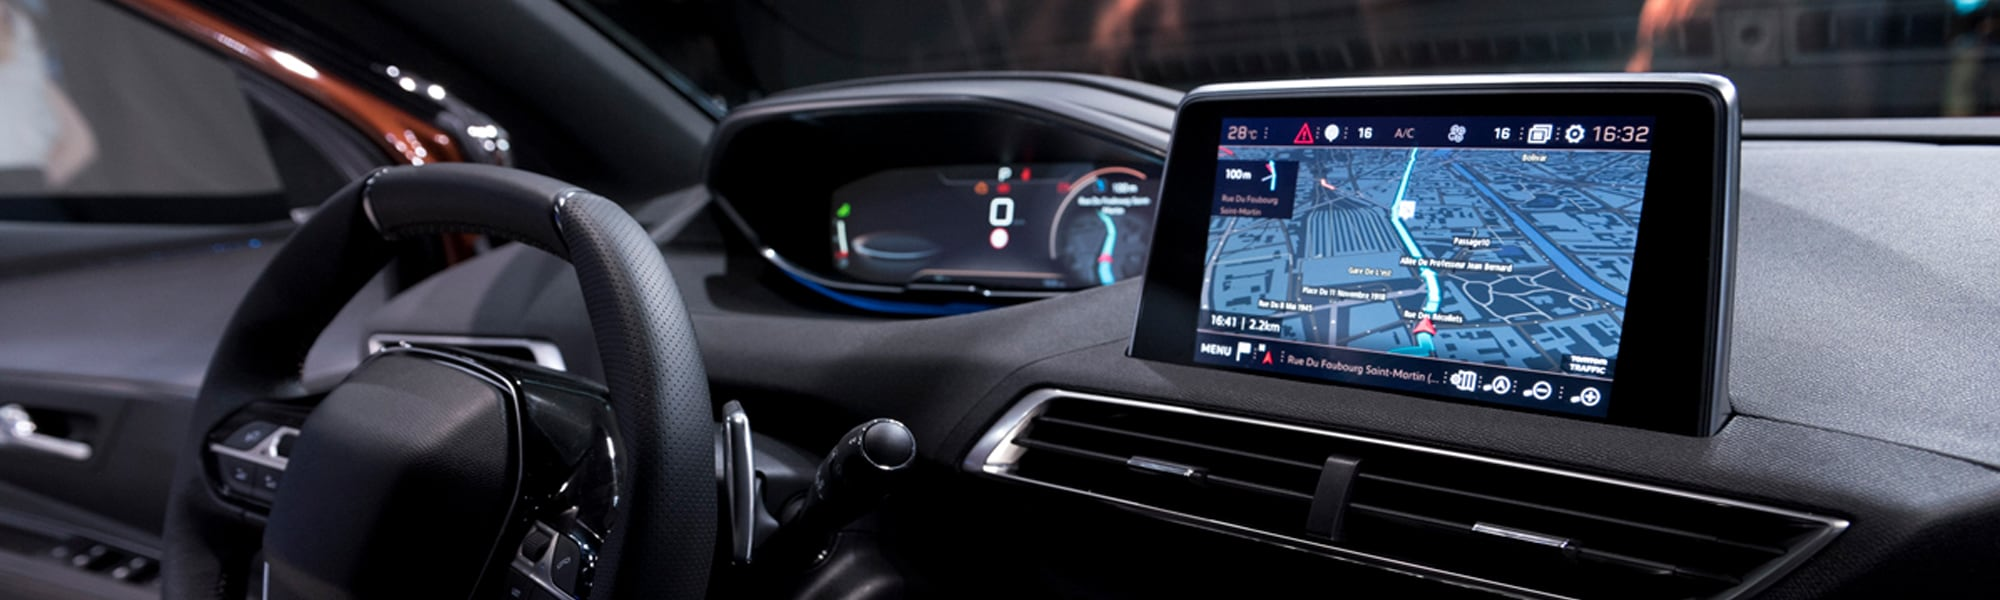 From good to great: the next step in embedded navigation